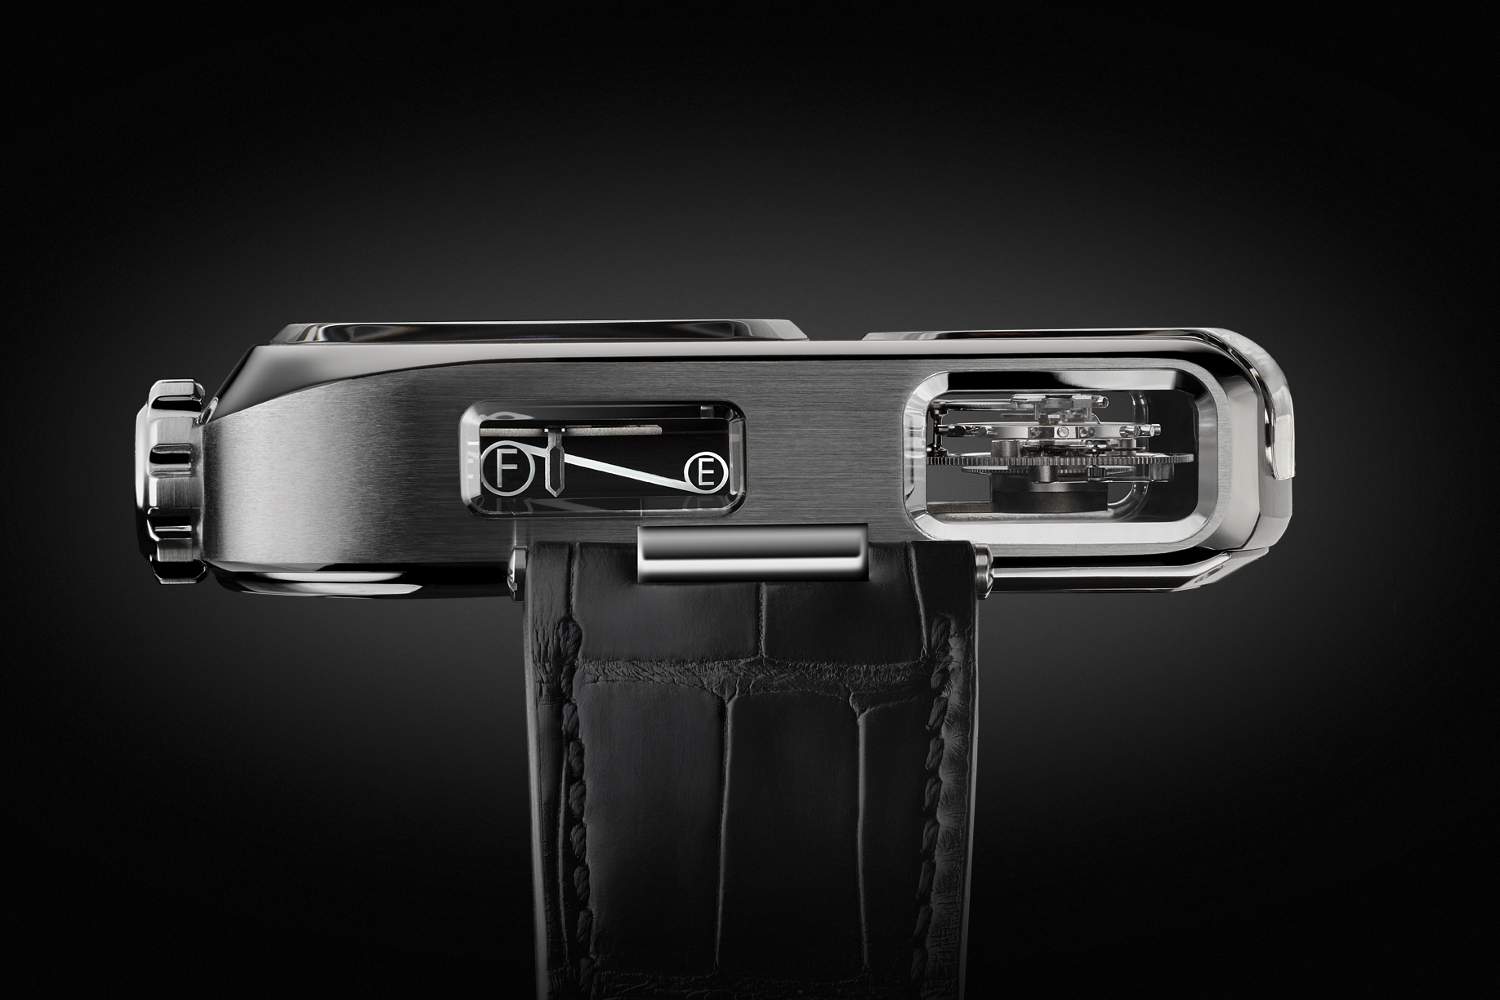 The linear power reserve of the Angelus U10 Tourbillon Lumiere. Photo courtesy of Angelus.